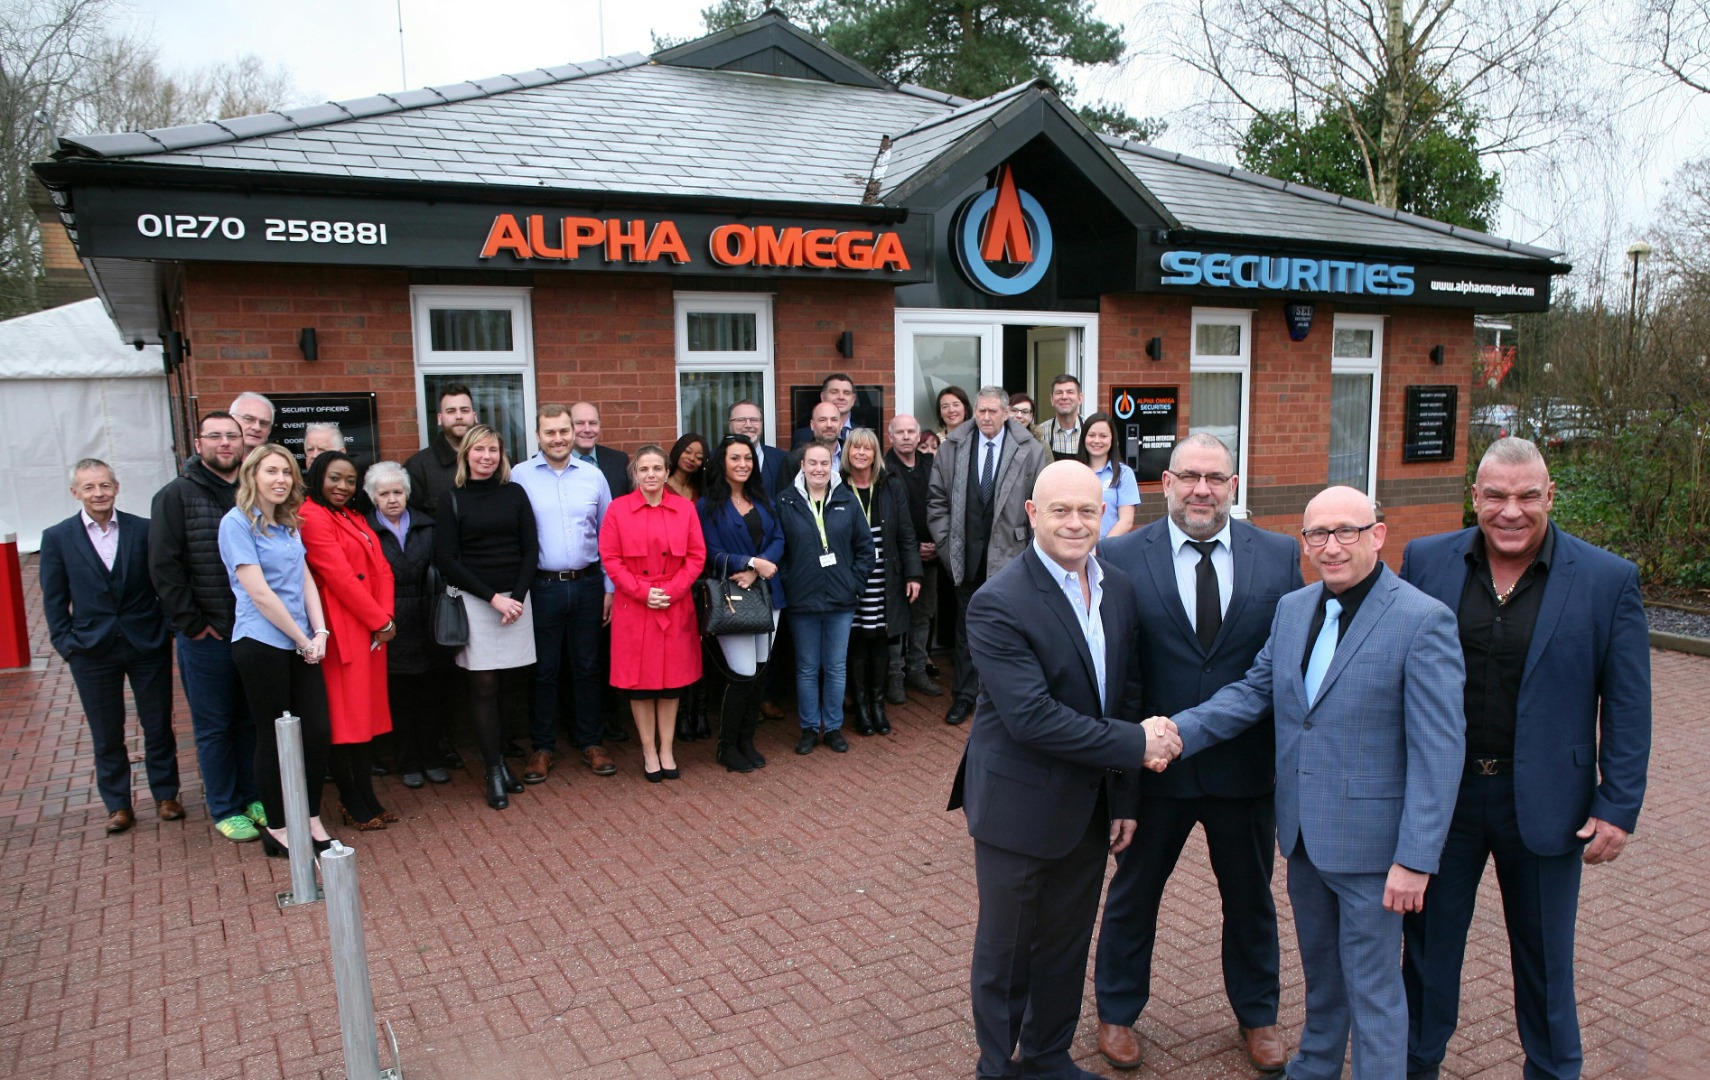 Celebrities help welcome security firm to Crewe Business Park